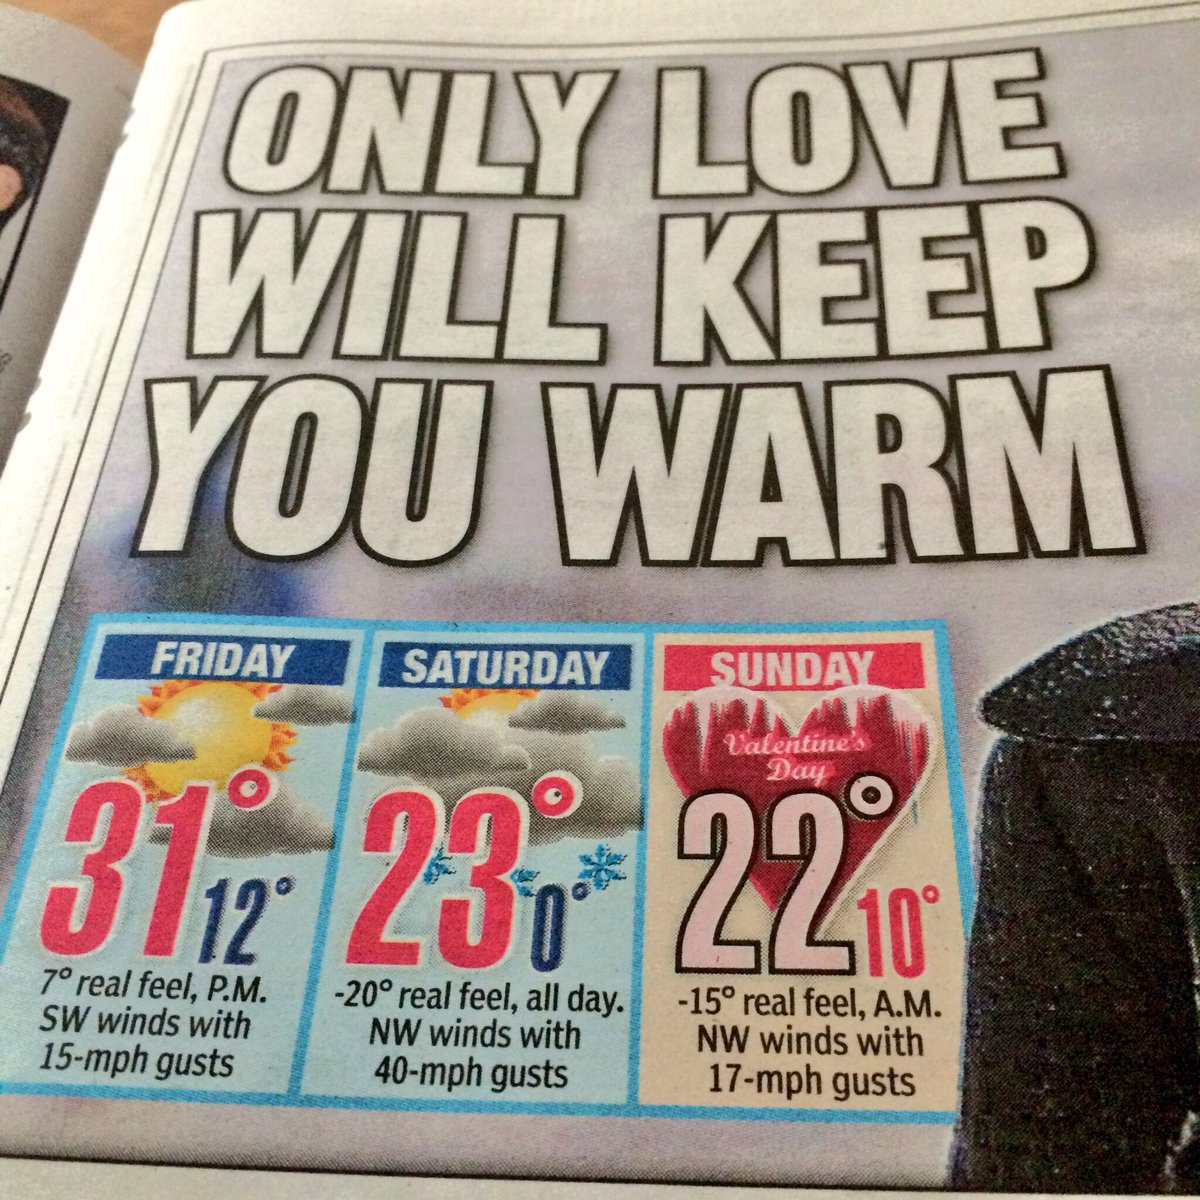 Happy Valentine's Day weekend from @nypost